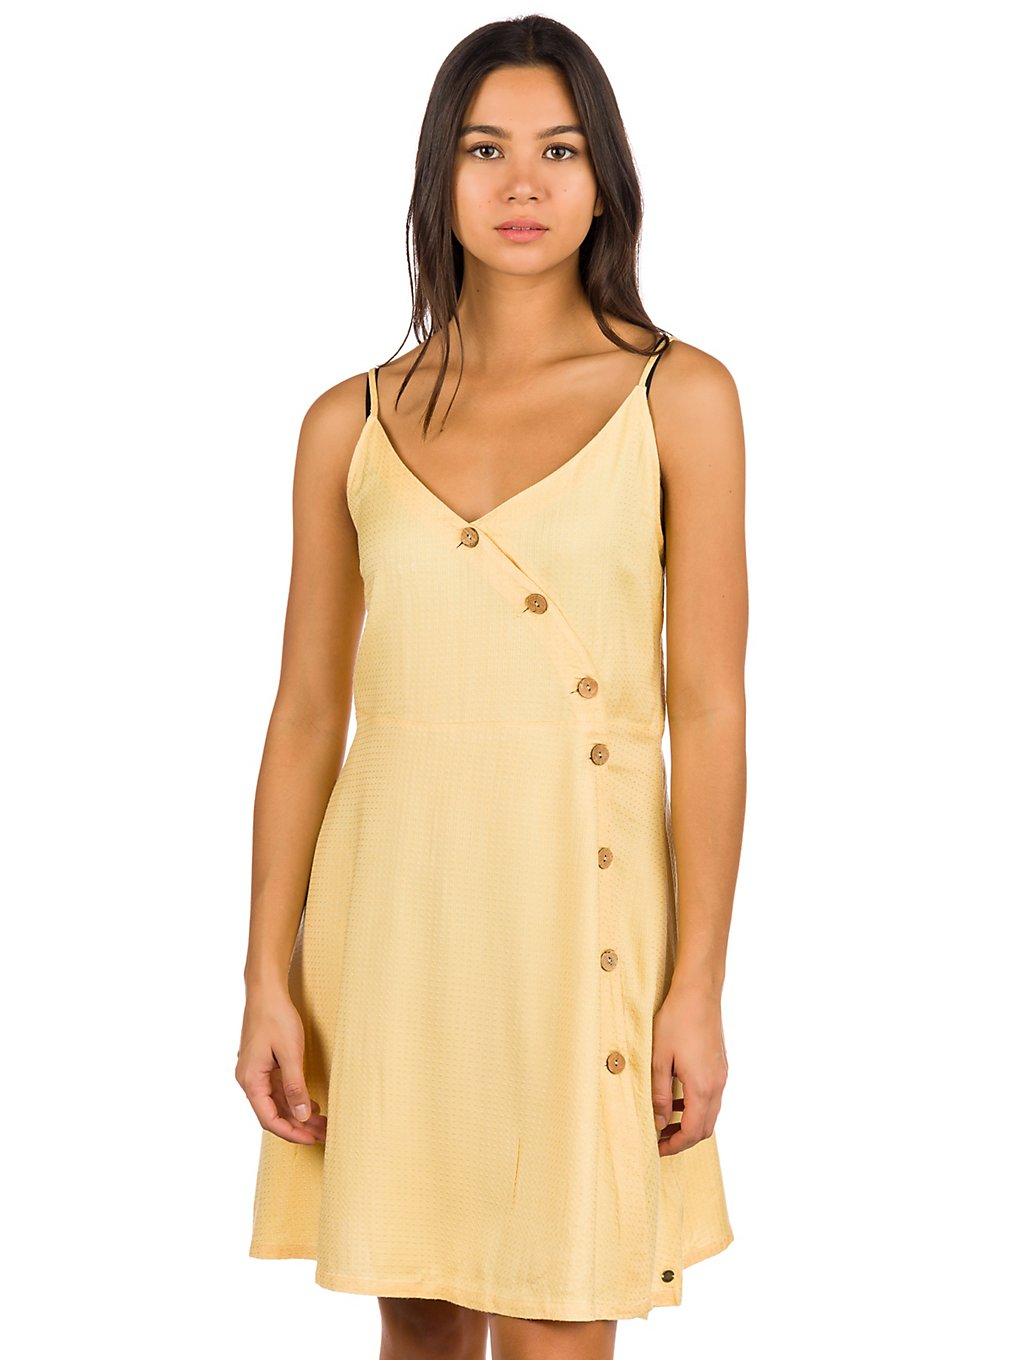 Roxy Sun May Shine Dress sahara sun